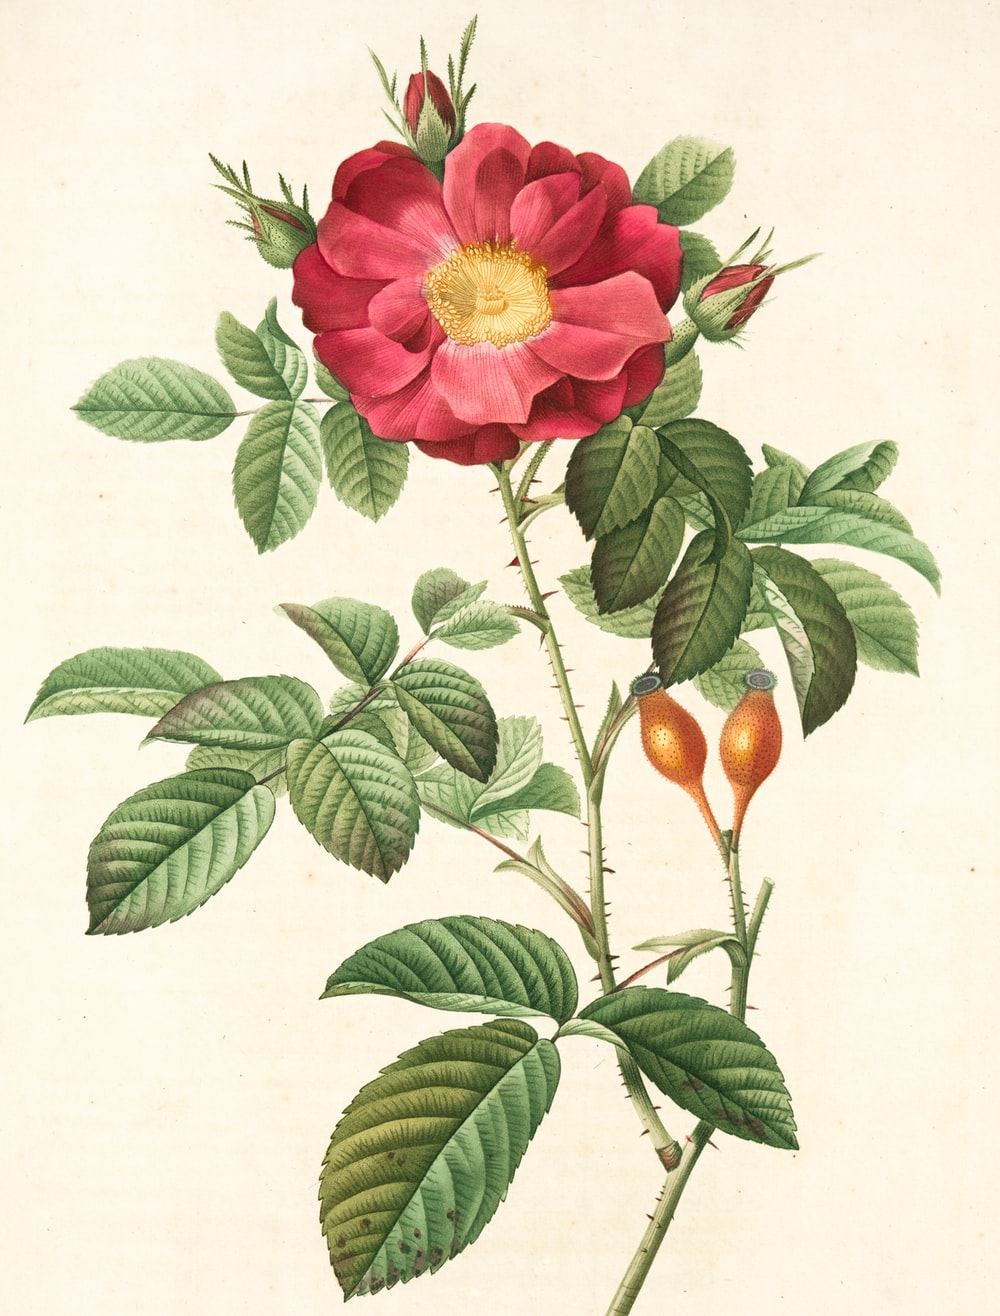 pink flower with green leaves illustration